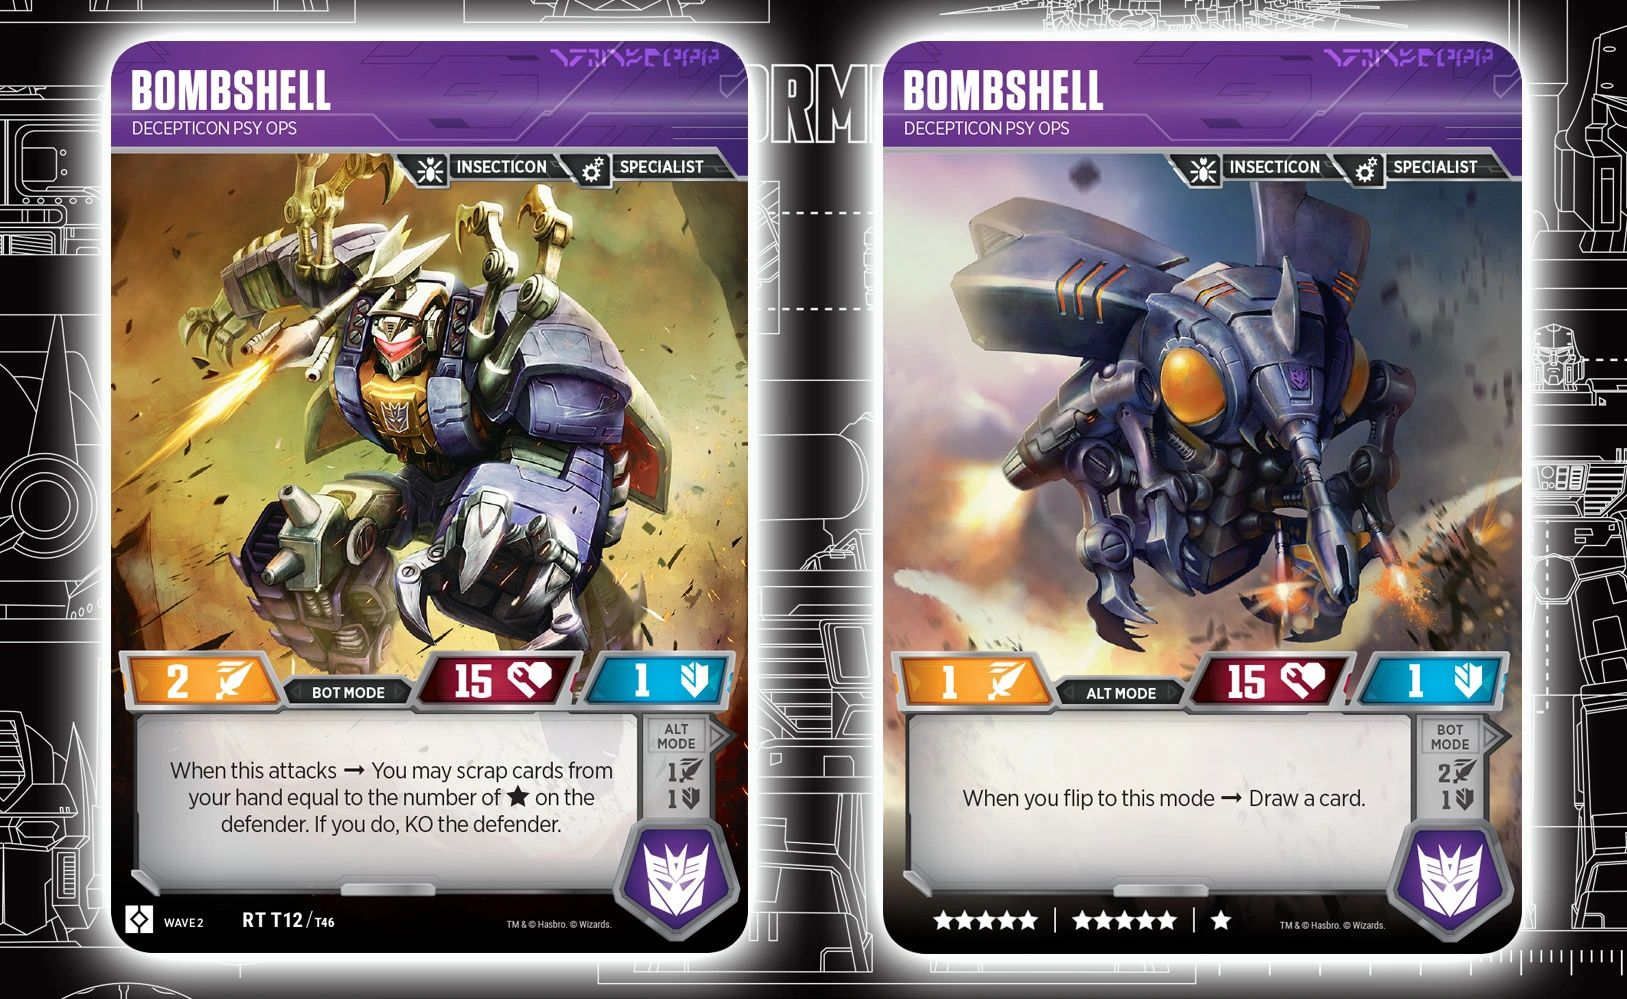 Transformers News: New Starscream Card Revealed For Official Transformers Trading Card Game And In-depth Analysis